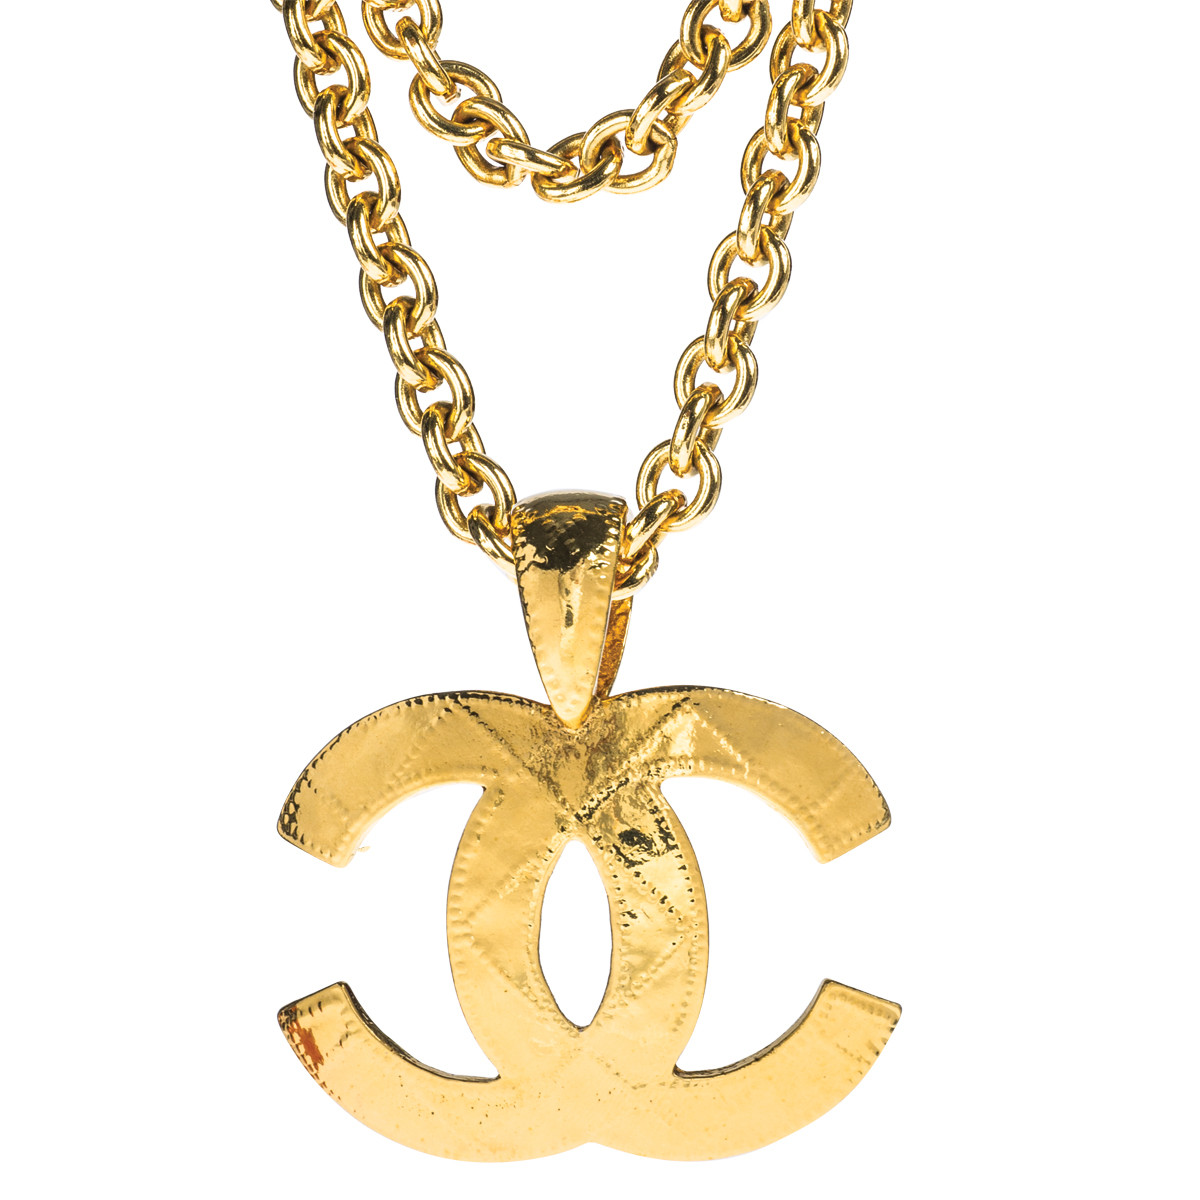 Vintage Chanel Quilted Logo Necklace